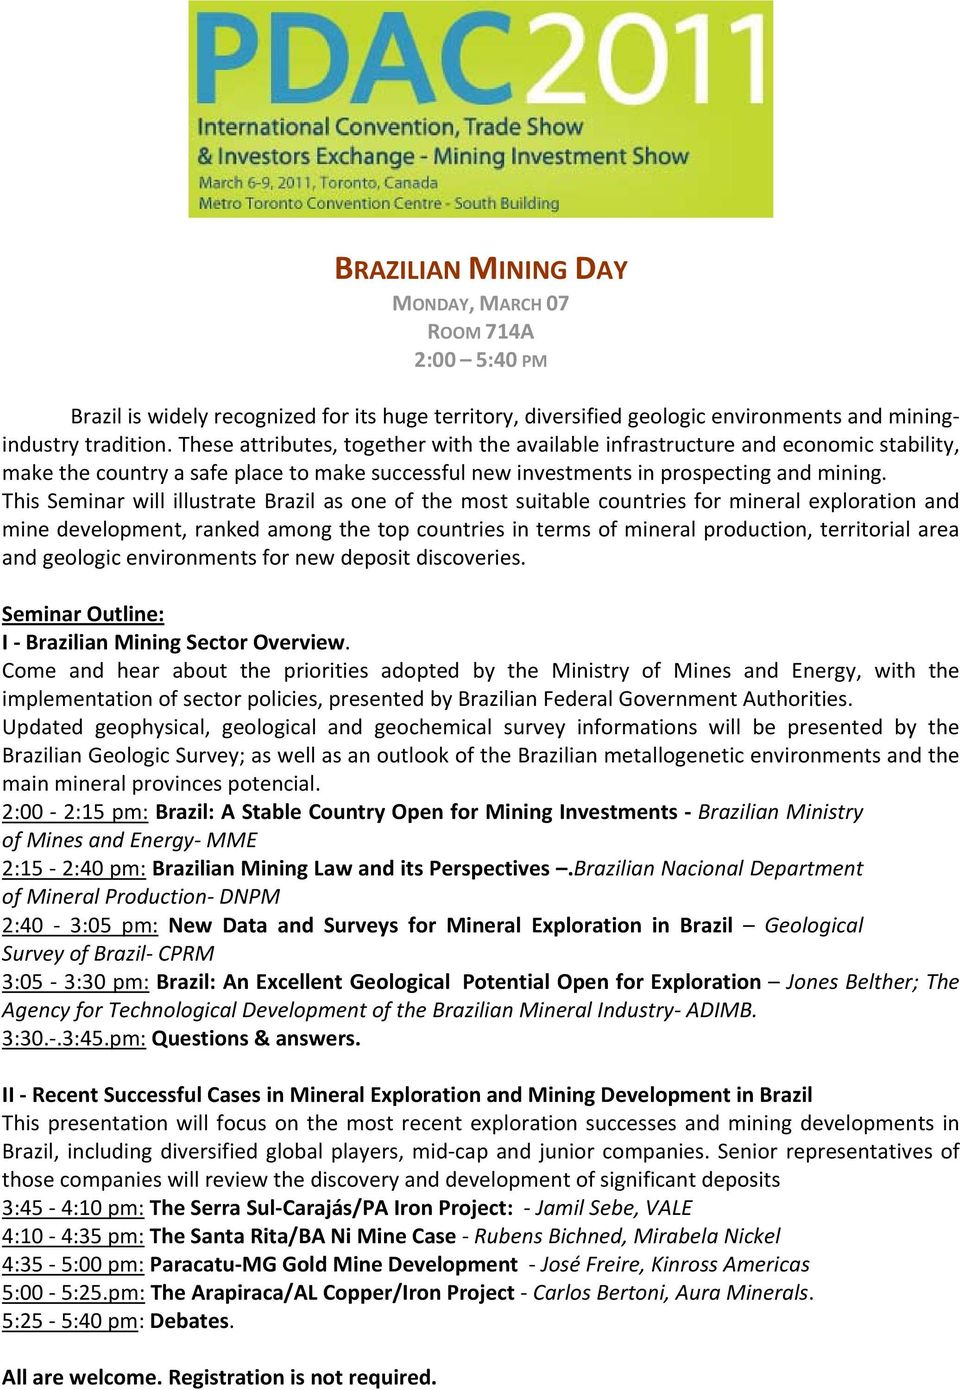 This Seminar will illustrate Brazil as one of the most suitable countries for mineral exploration and mine development, ranked among the top countries in terms of mineral production, territorial area